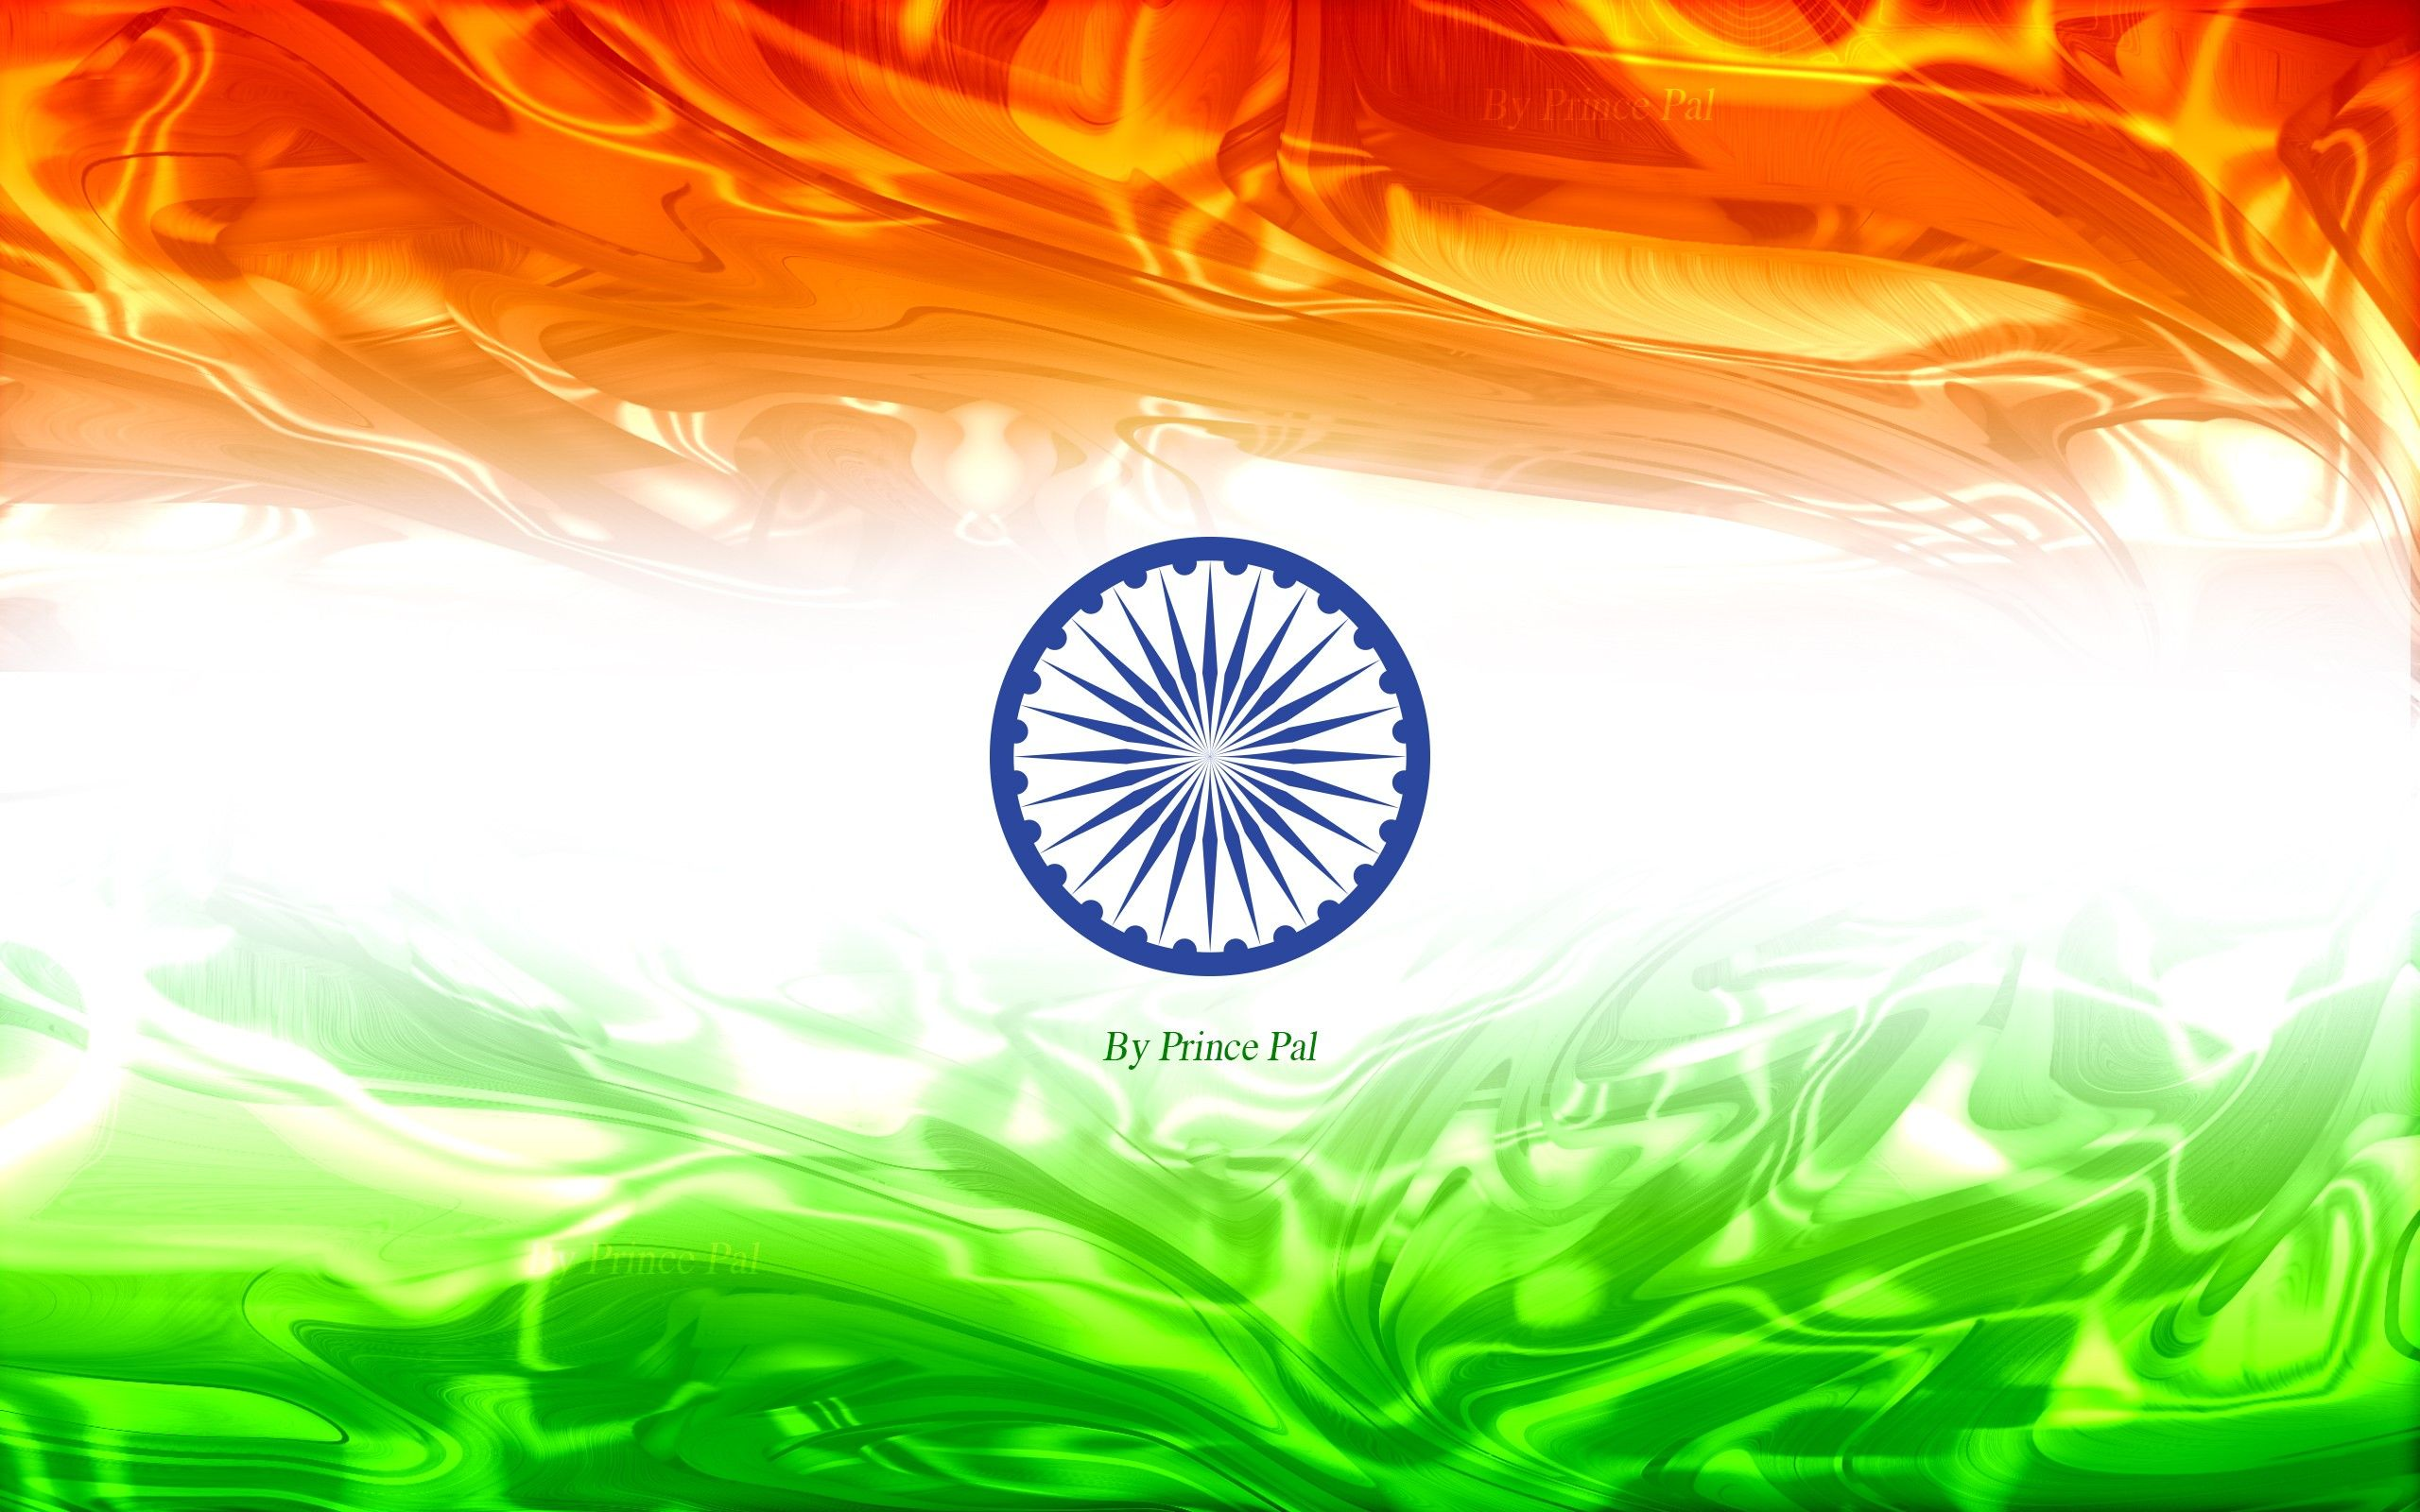 Drapeau India Indian Flag Hd Images For Whatsapp Dp Profile Wallpapers For Fb